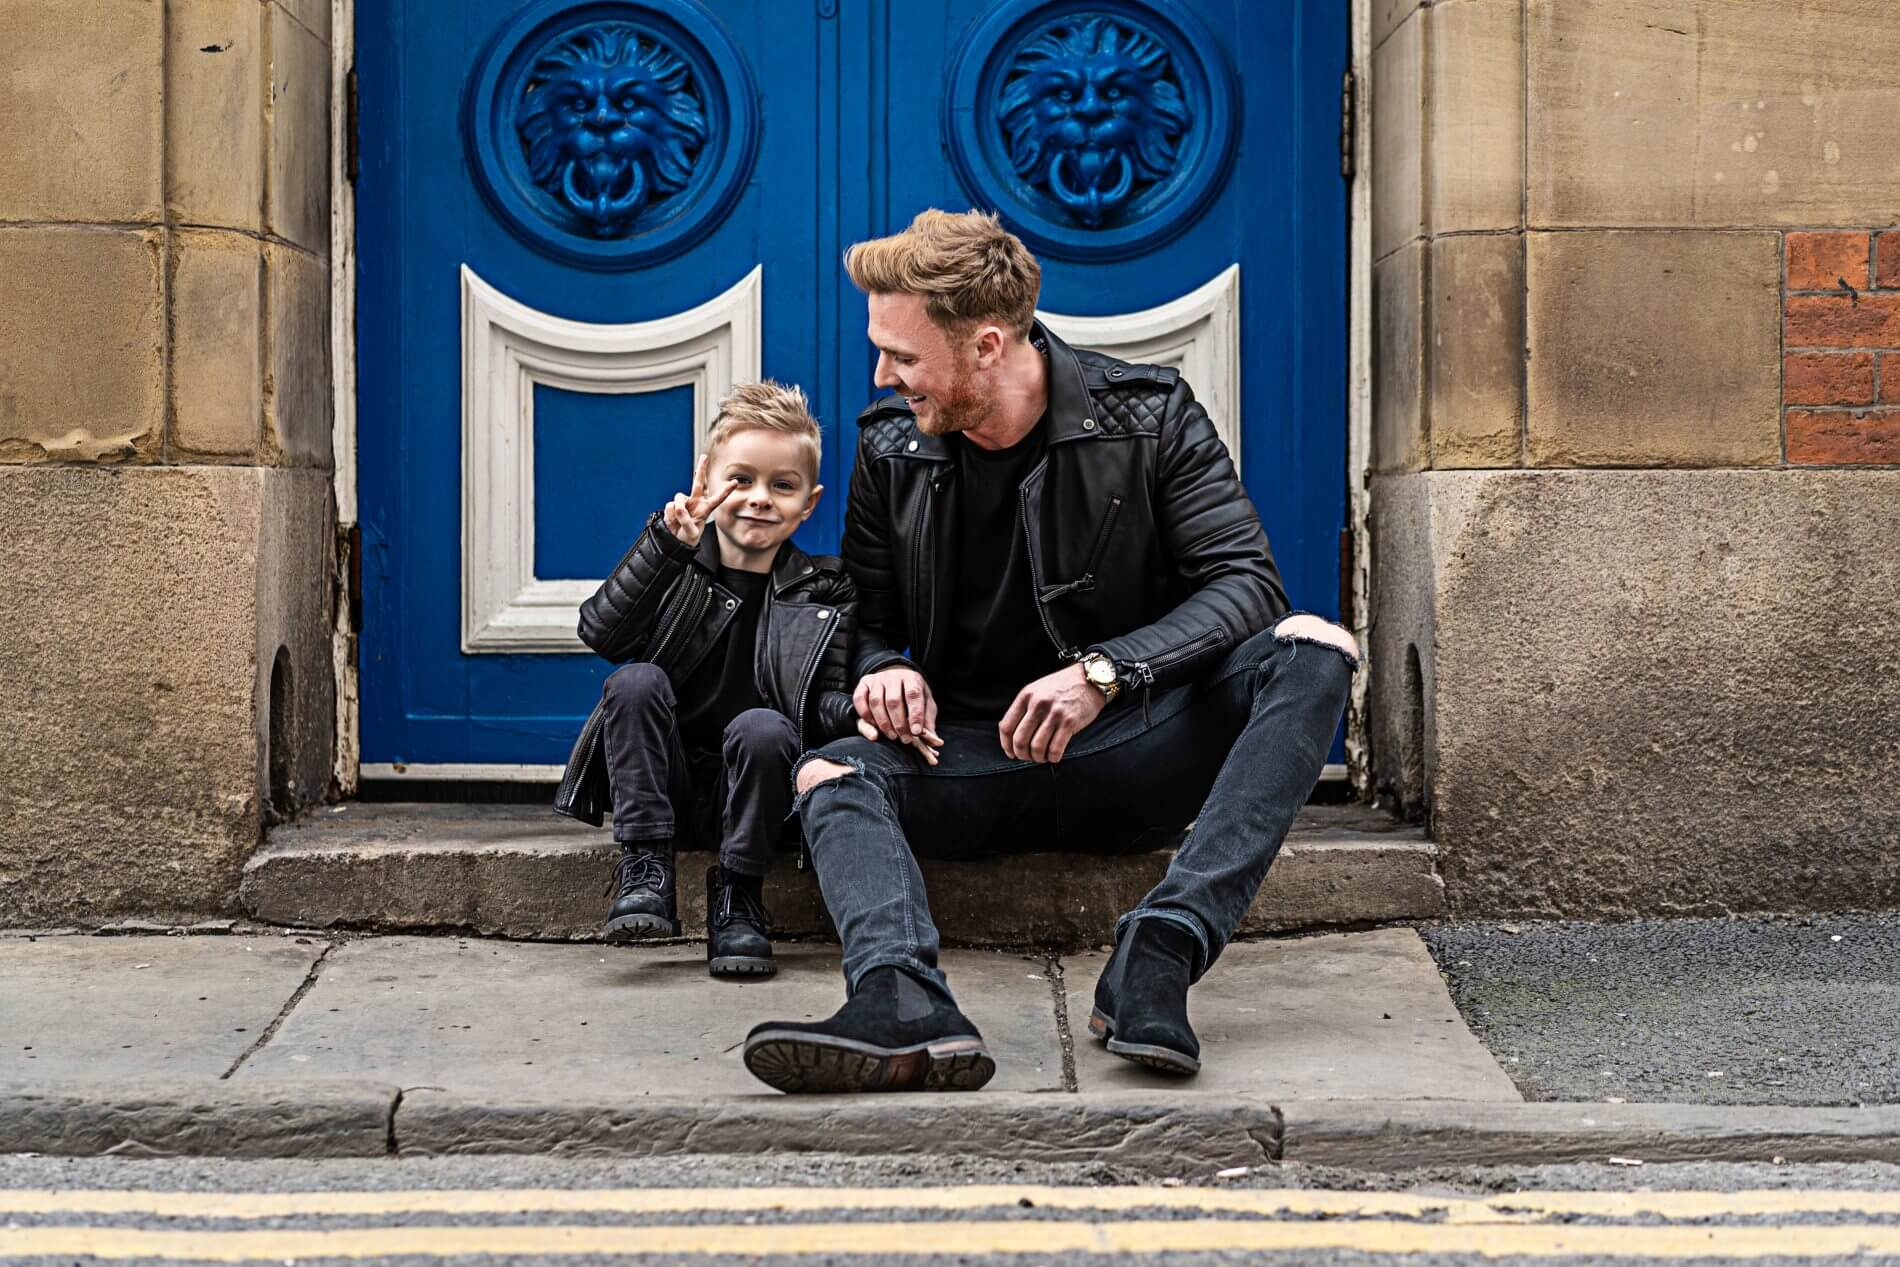 This Manchester brand is creating matching outfits for fathers and sons to rock this winter, The Manc